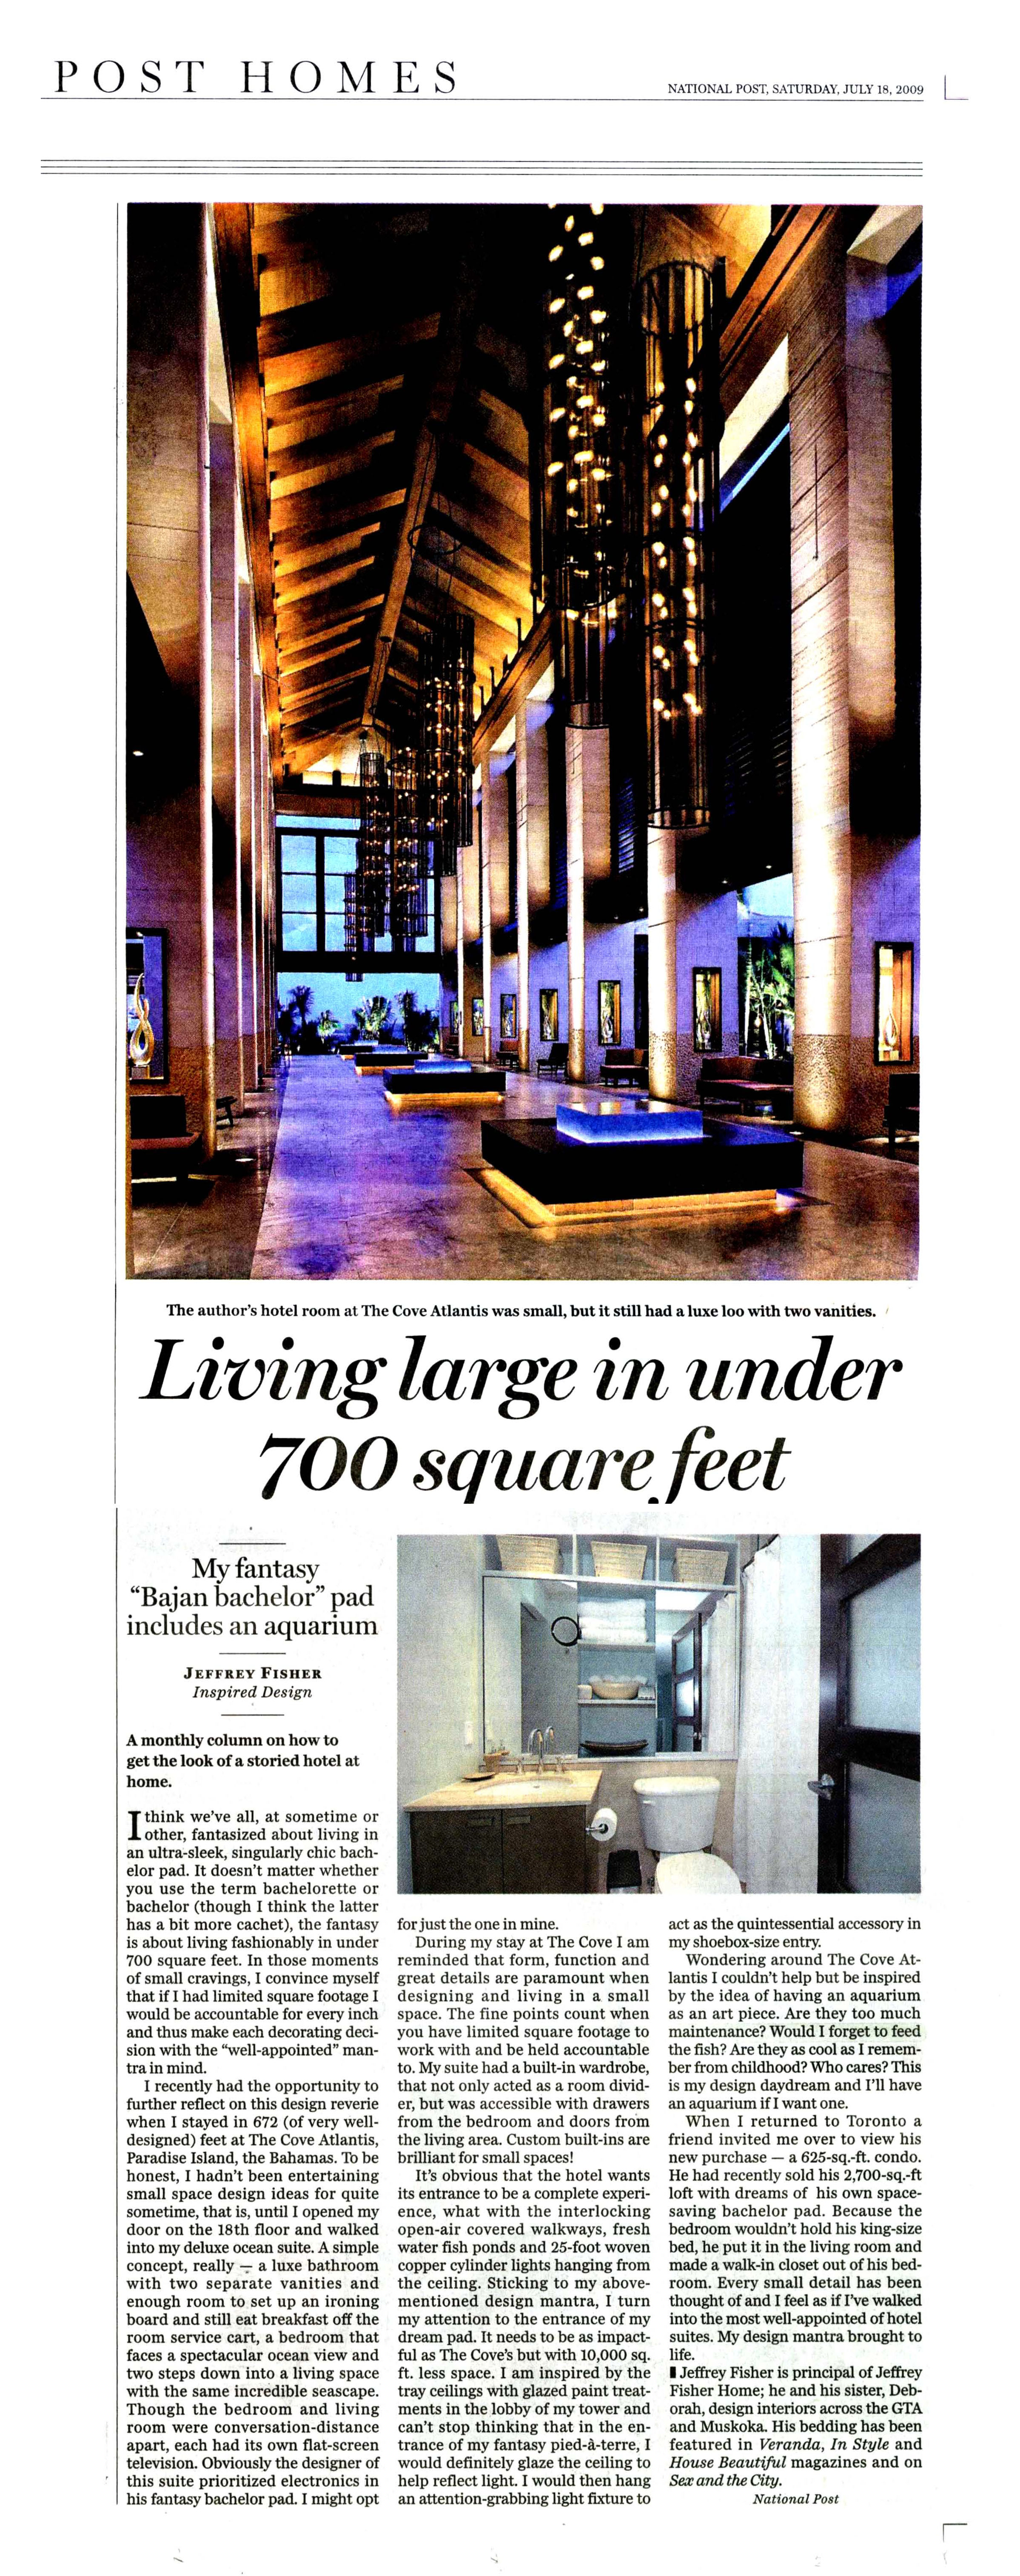 Living large in under 700 square feet NATIONAL POST